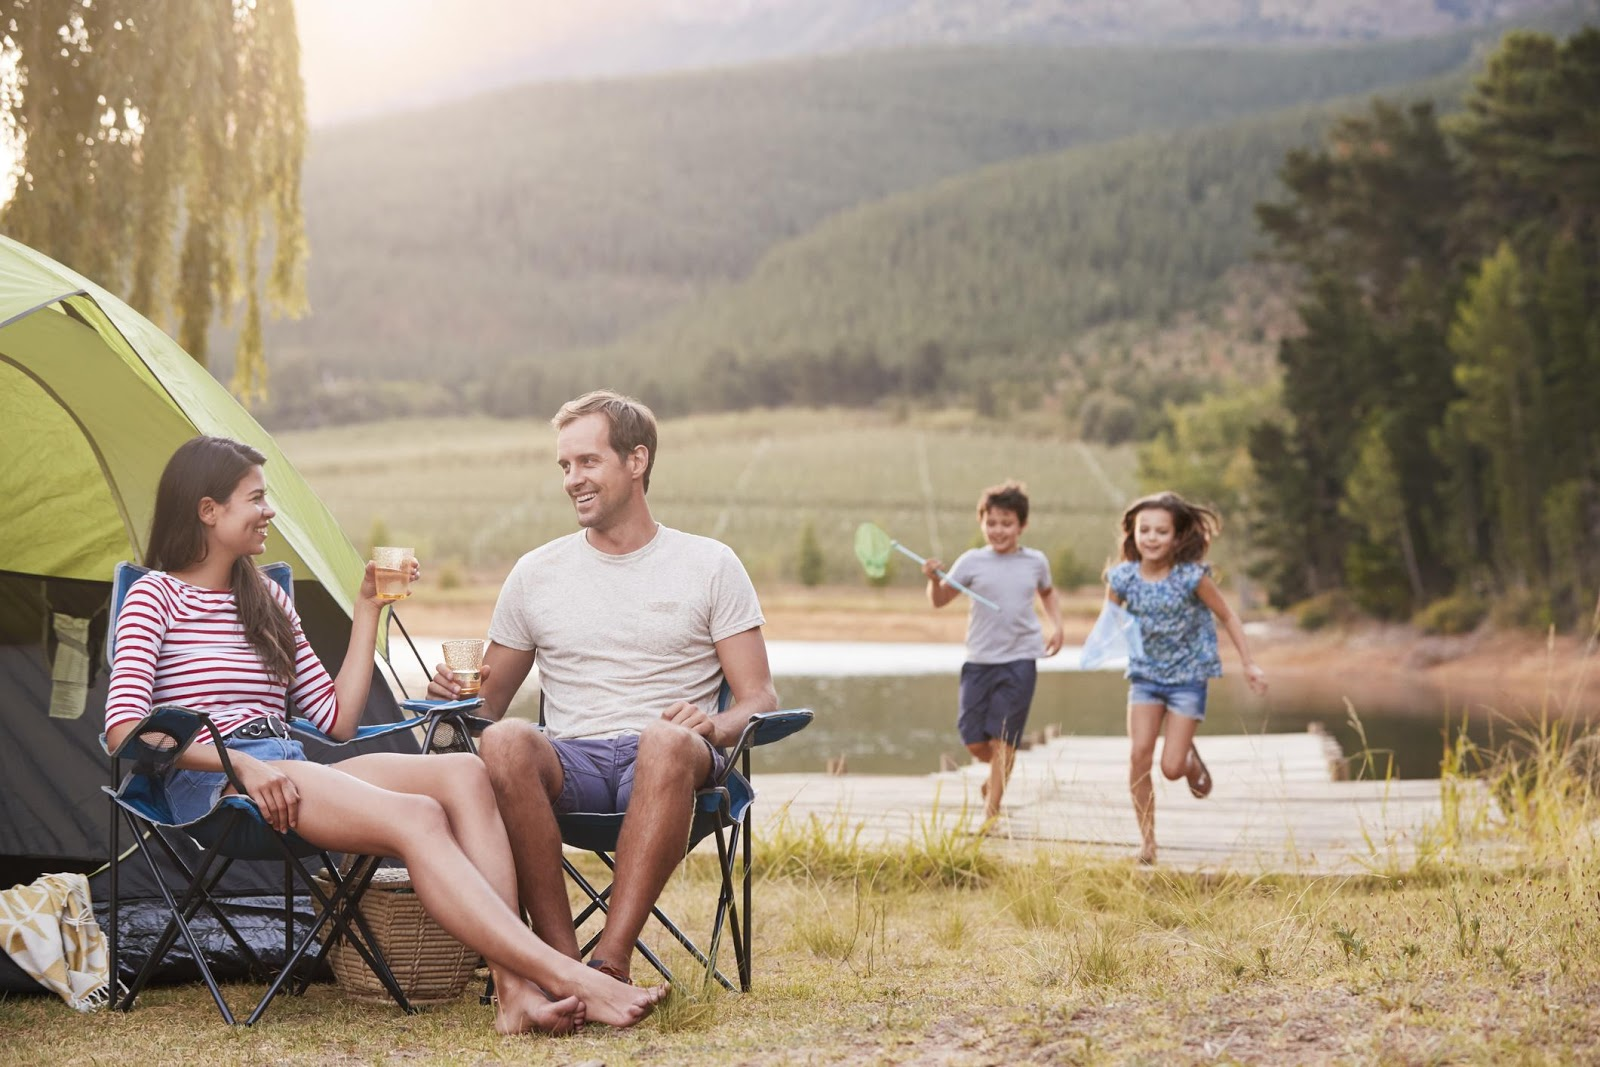 Couple in their shorts and t-shirts camping while children run in the background